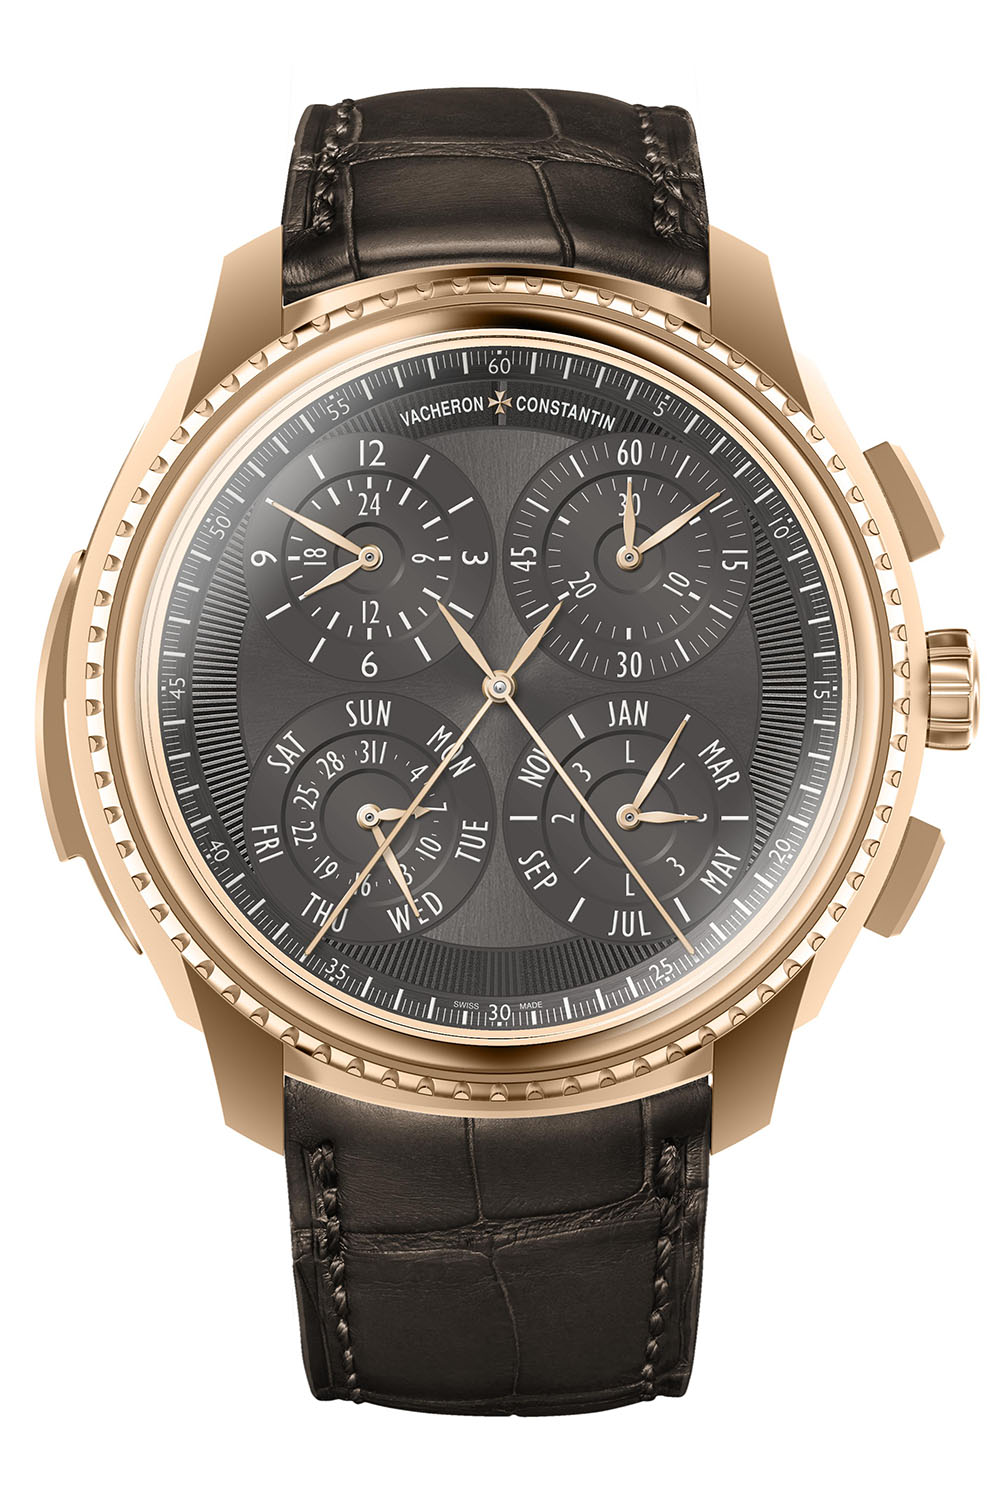 Vacheron Constantin Les Cabinotiers Grand Complication Split-seconds chronograph Tempo - 9740C - 10